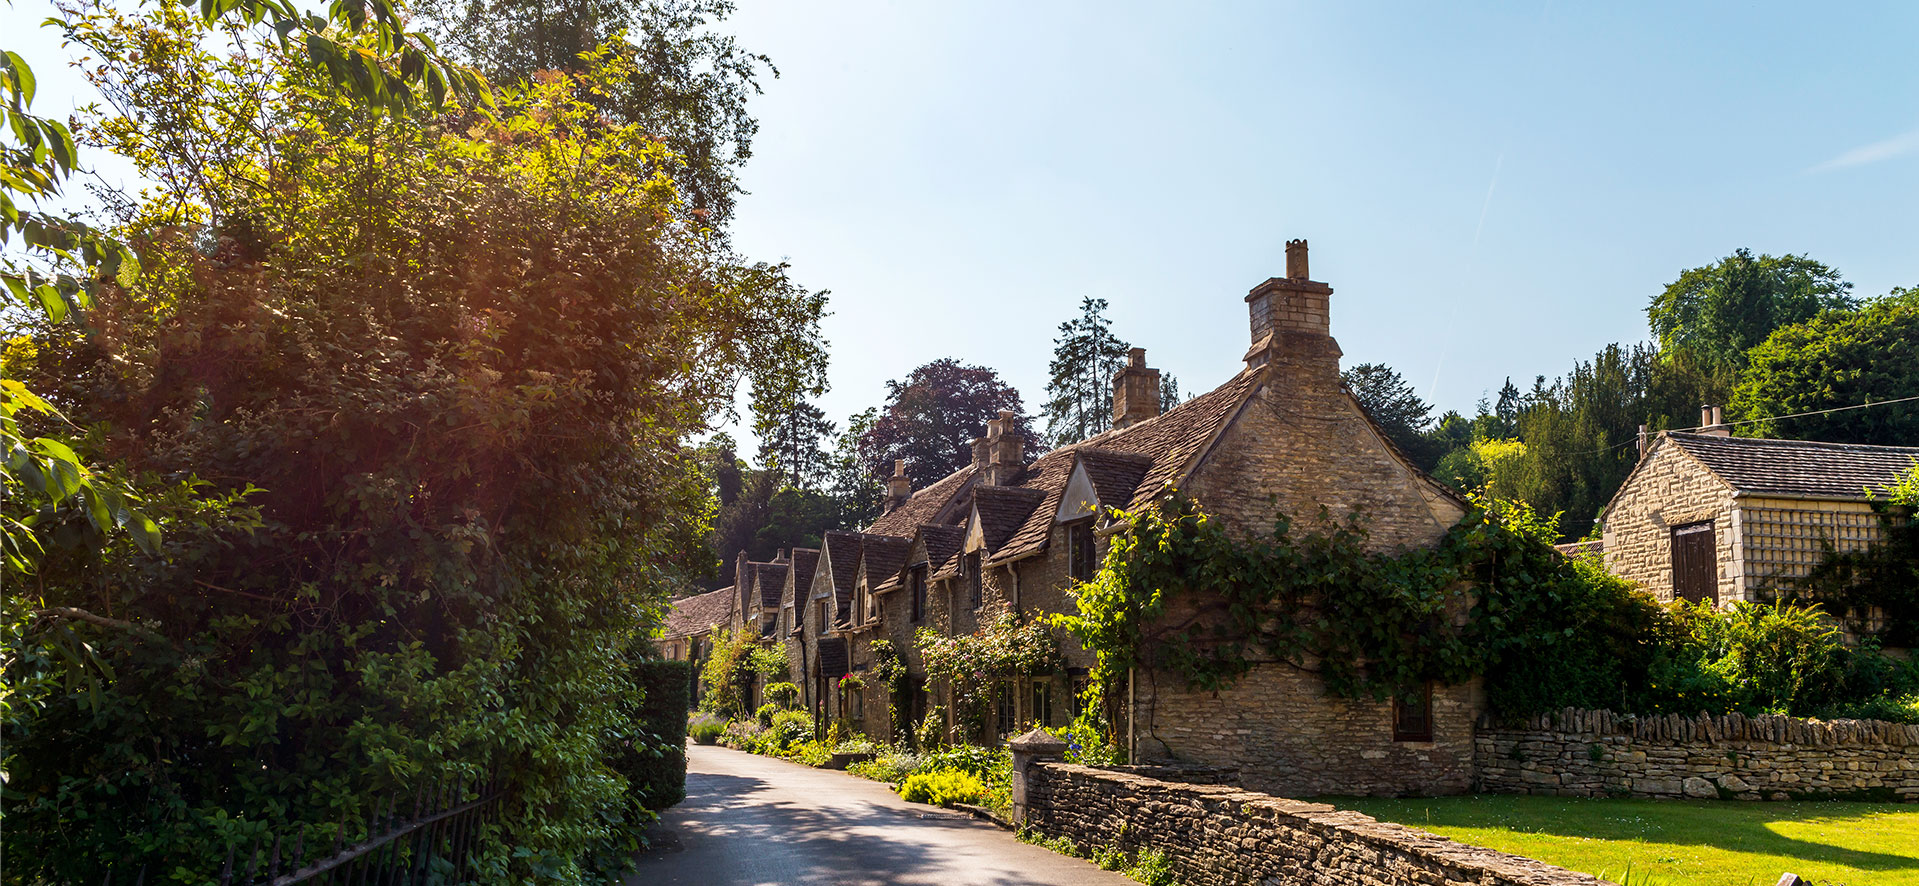 Top reasons why Gloucestershire, Bristol and the Cotswolds are great places to live